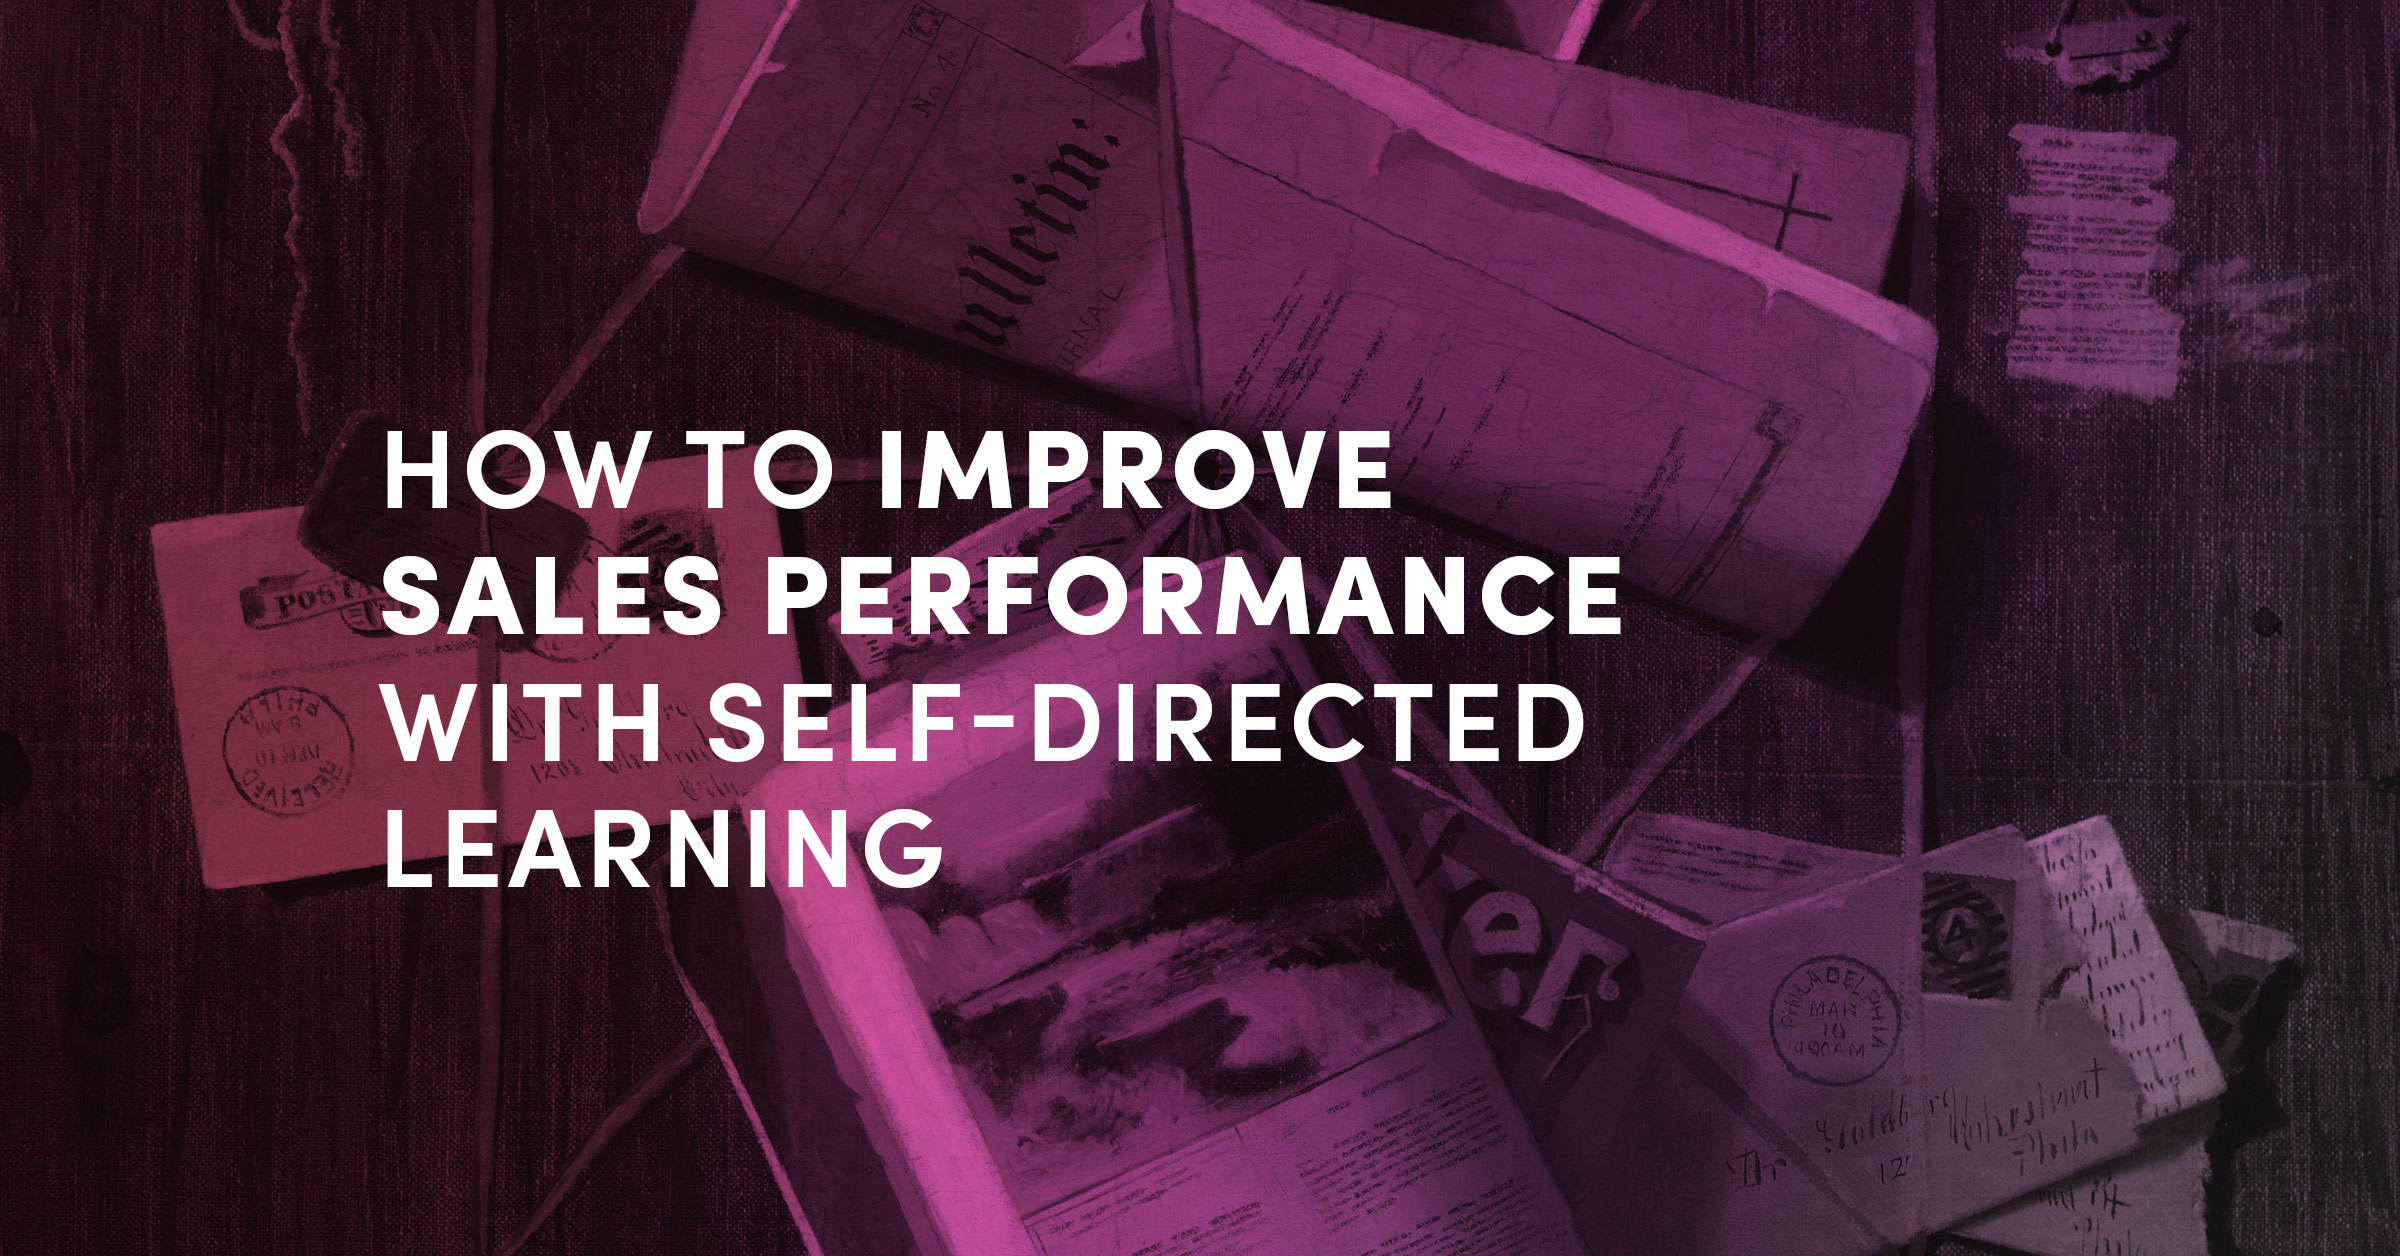 How To Improve A Sales Team's Performance With Self-Directed Learning